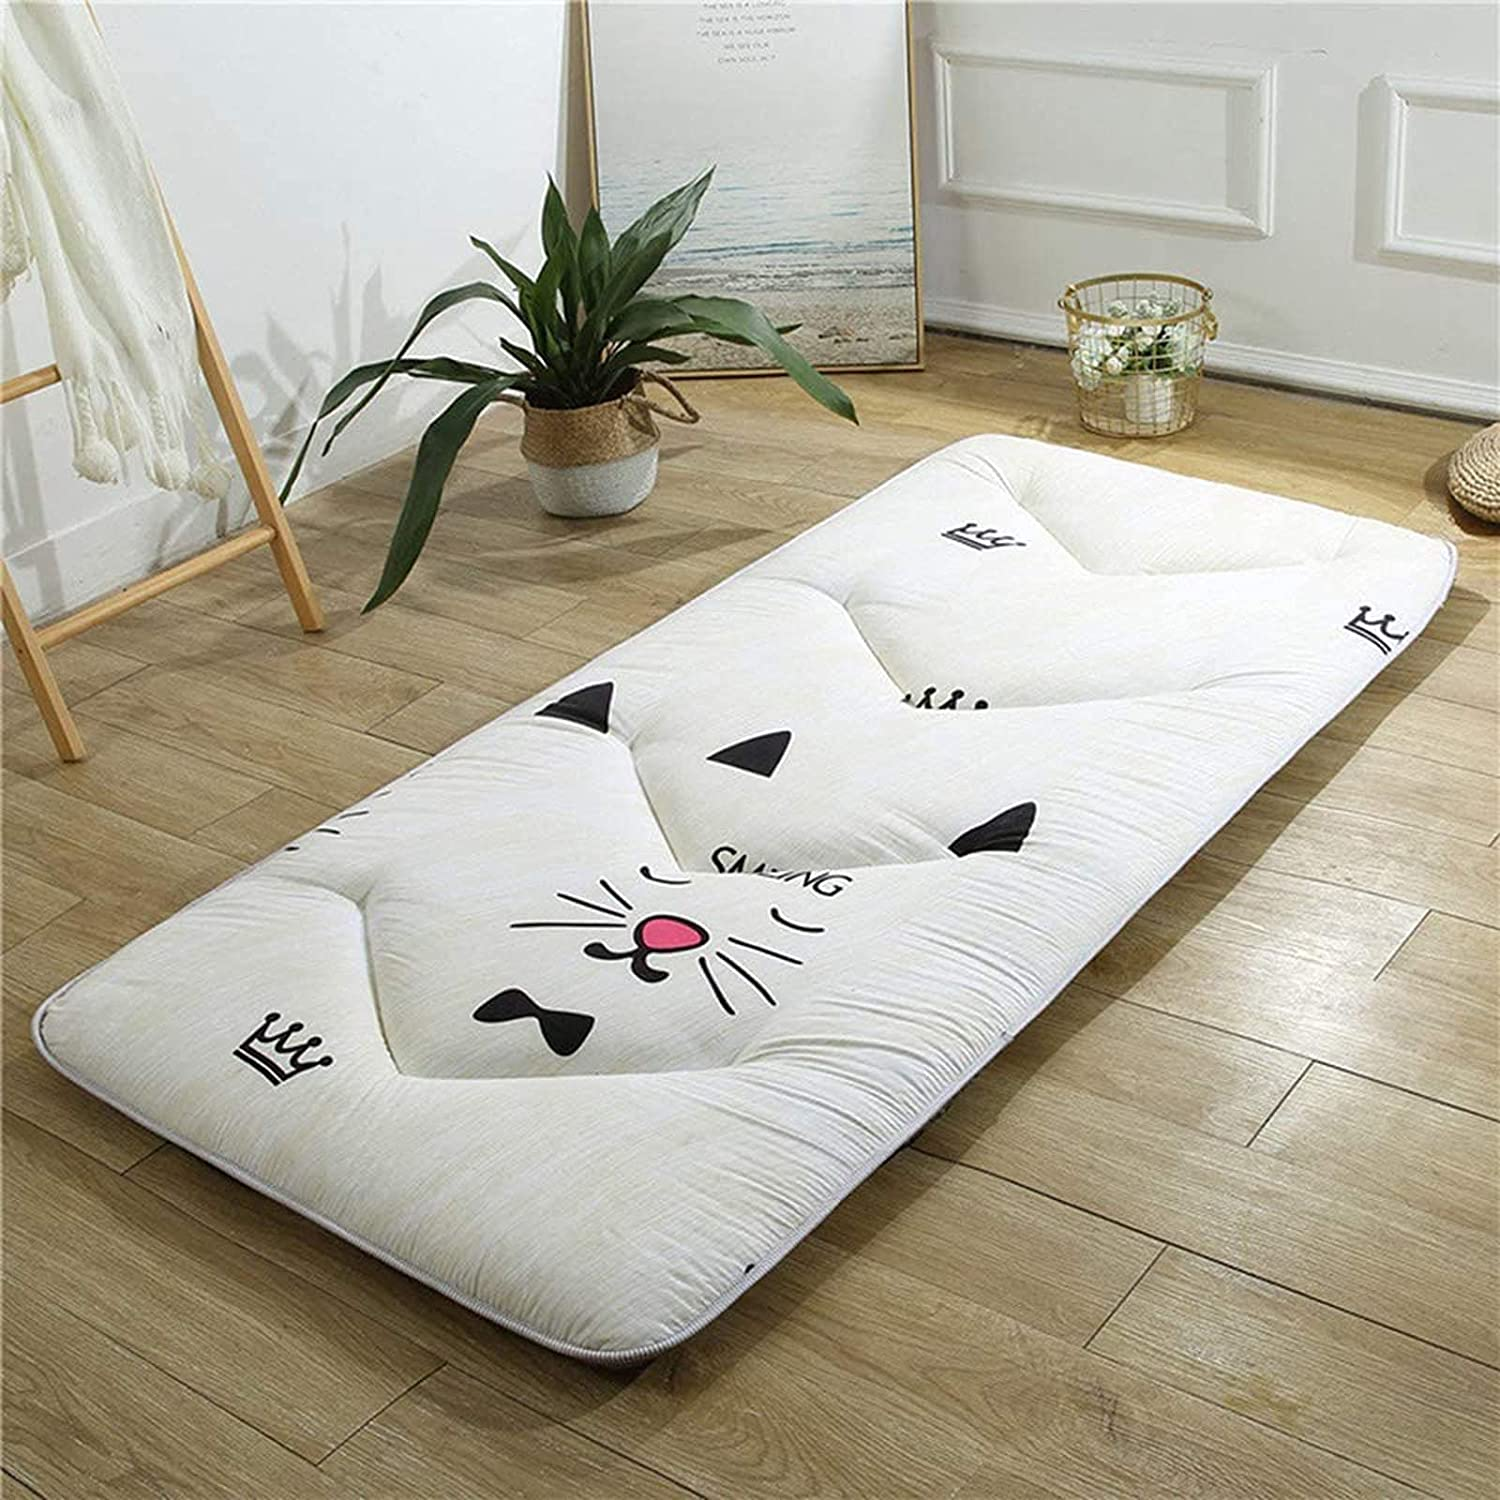 LIMIAO High Super special price quality Memory Foam Camping Mattress Compact Sleeping Pad Thick